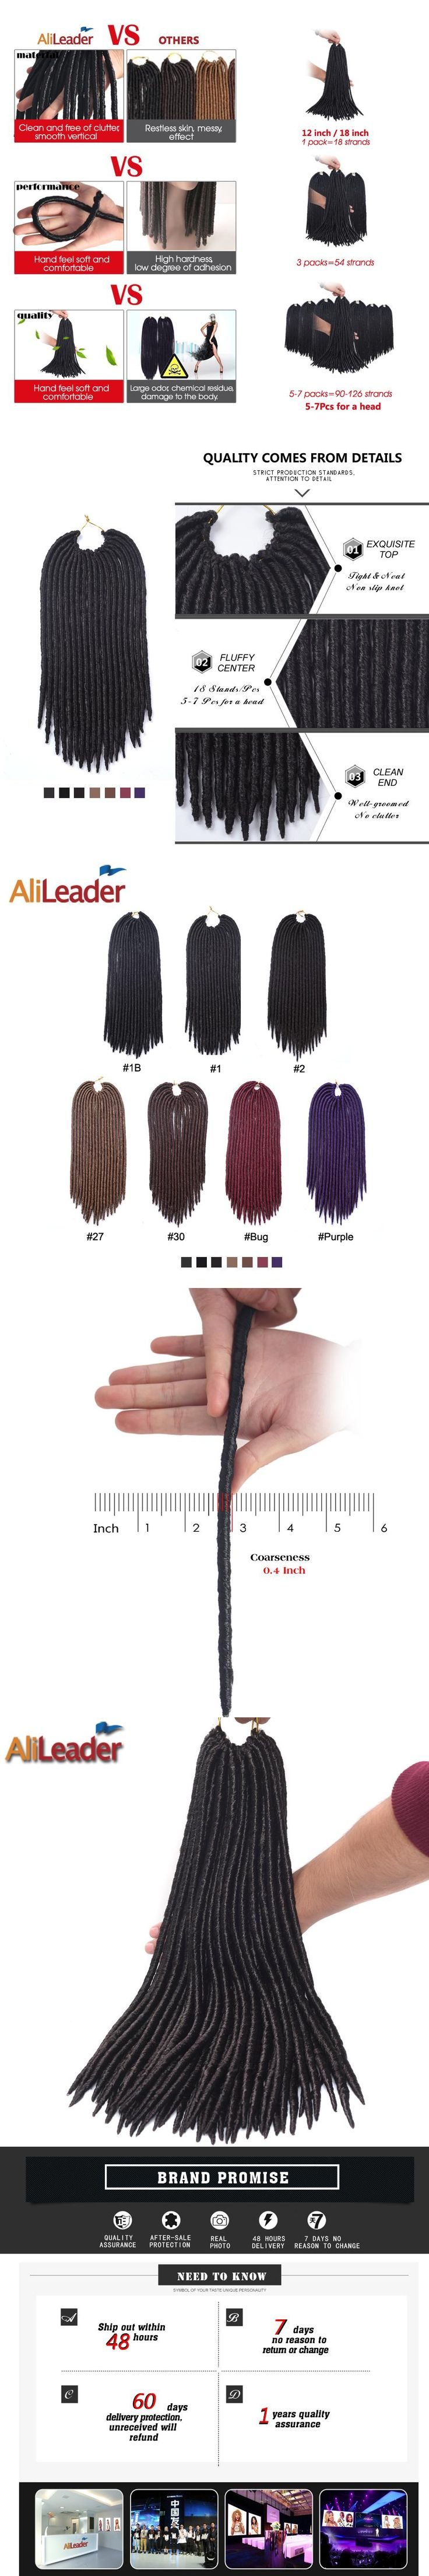 "AliLeader 12"" Short 18"" Middle Size Faux Locs Crochet Hair Kanekalon Pre Braided Hair Extensions 18 Strands Synthetic Hair Weave"